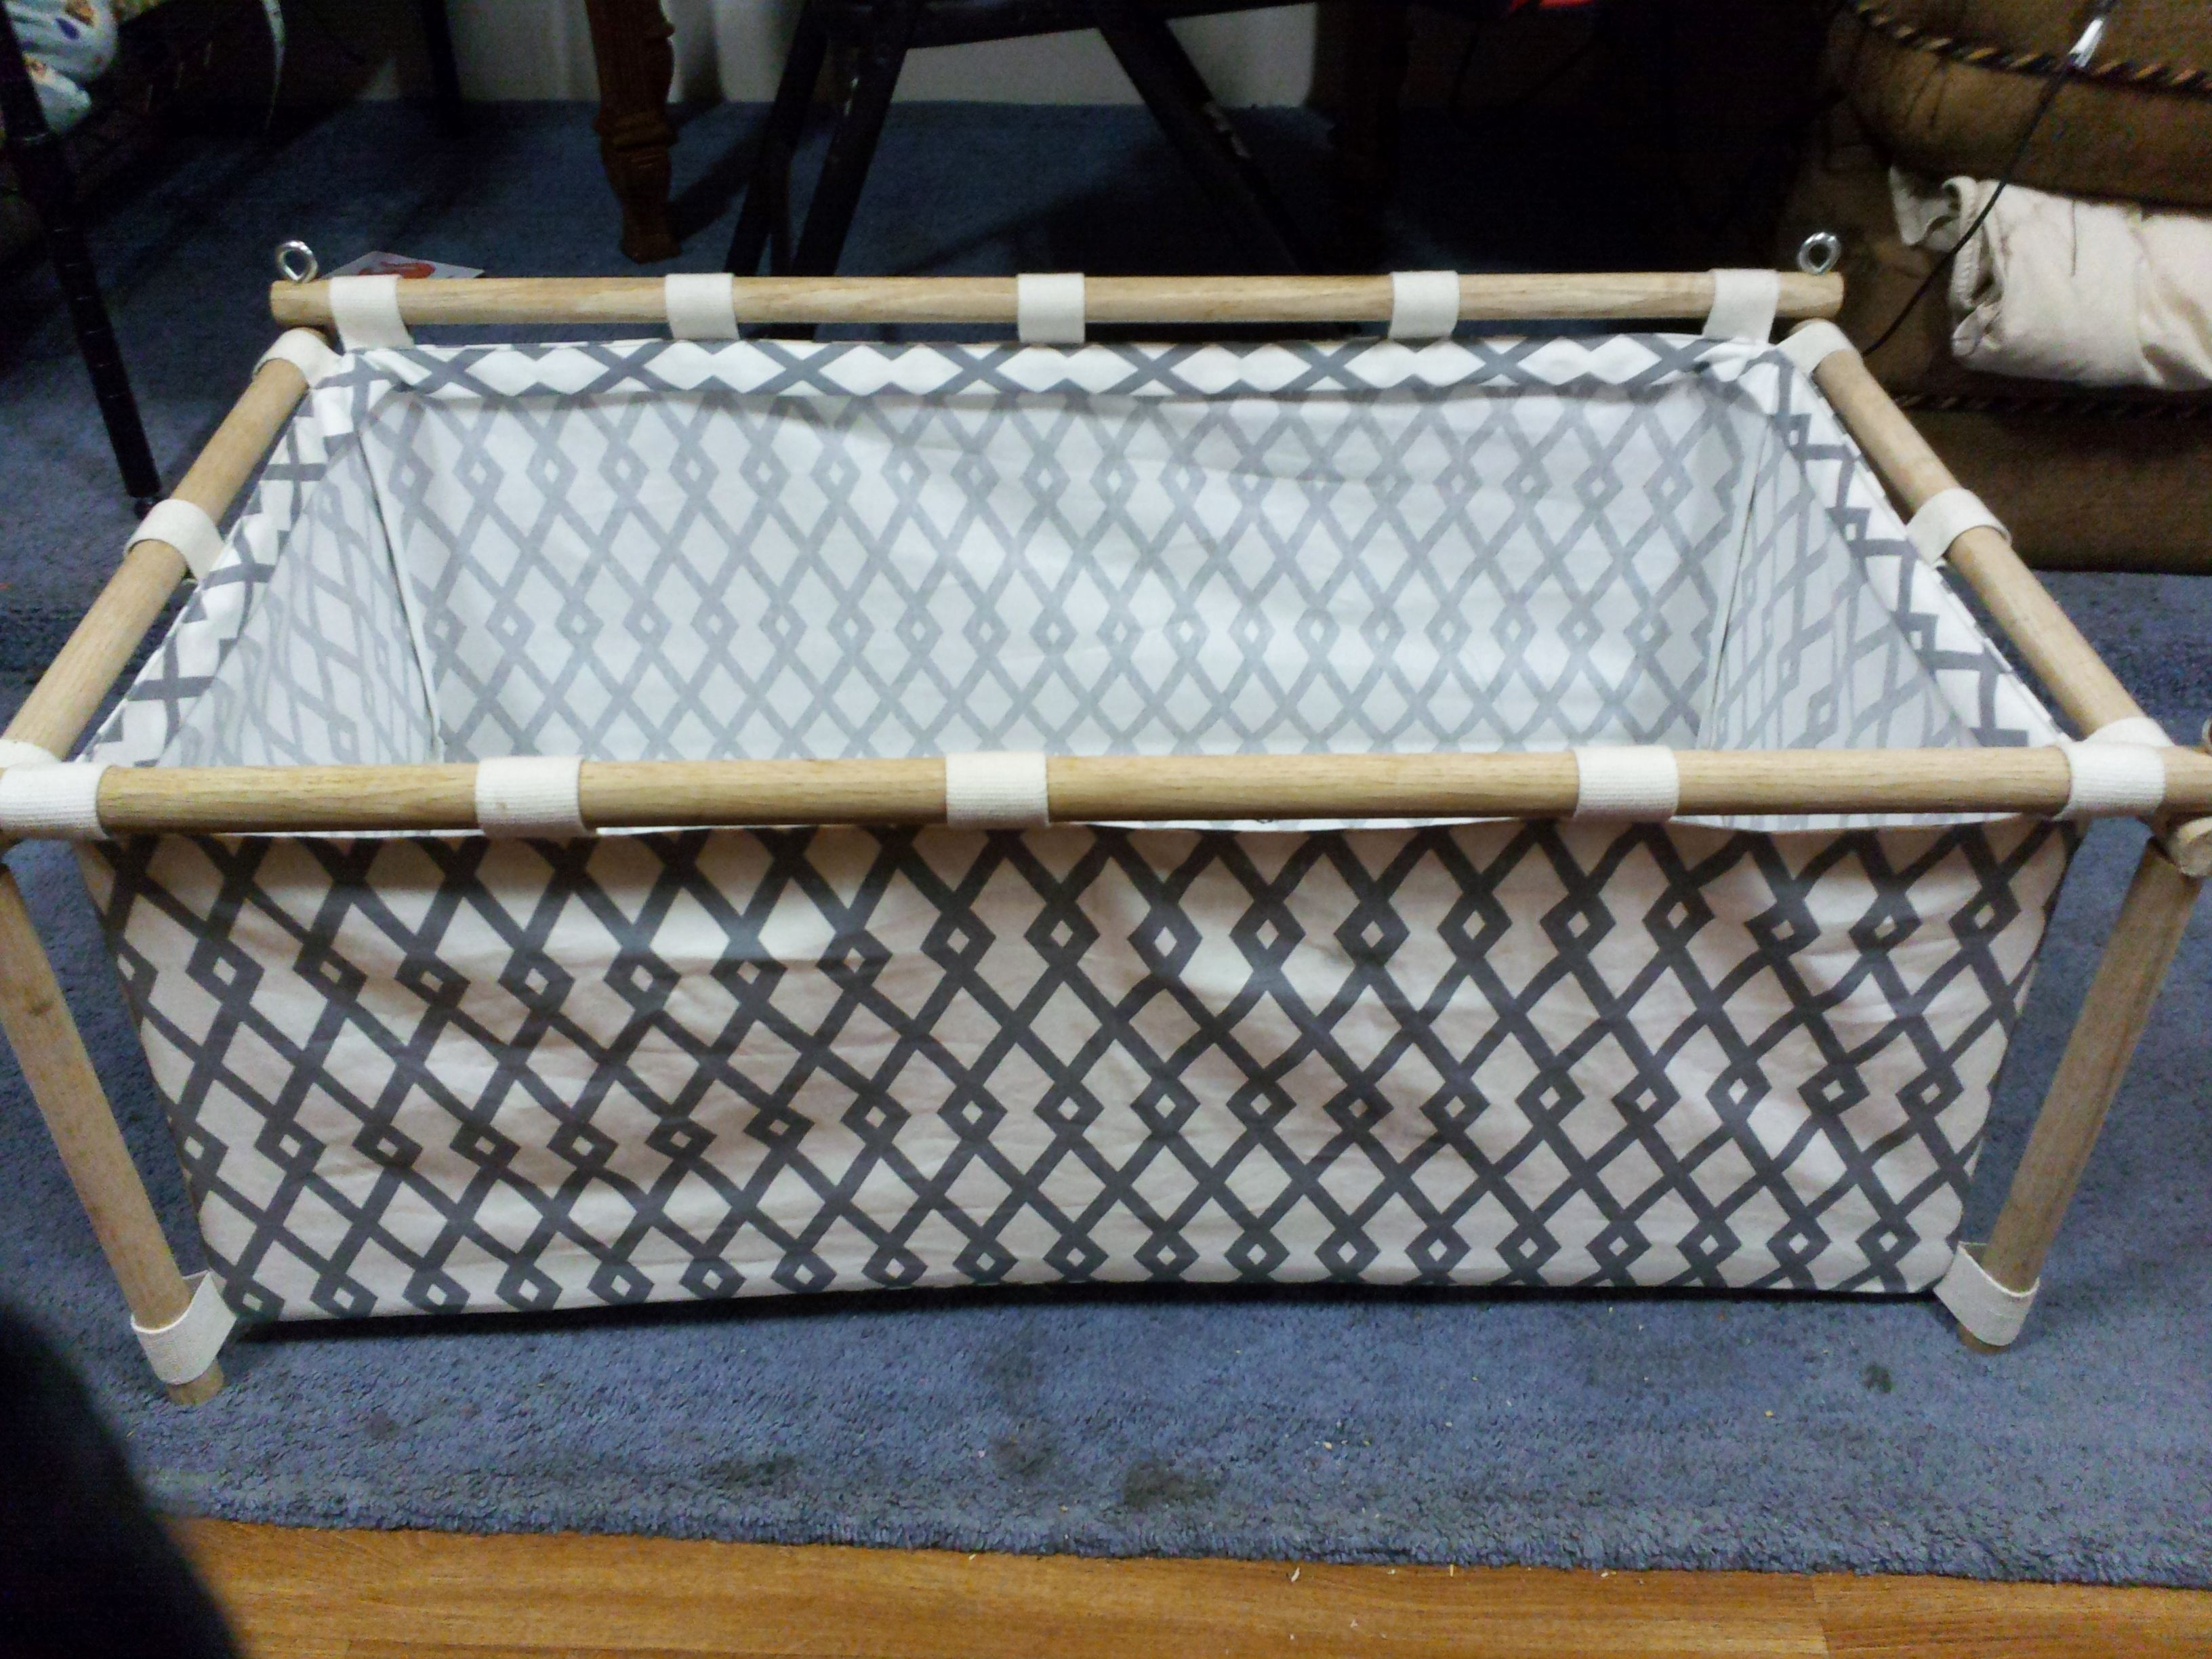 Diy Babyzimmer ~ The bassinet i made for baby diy my creations